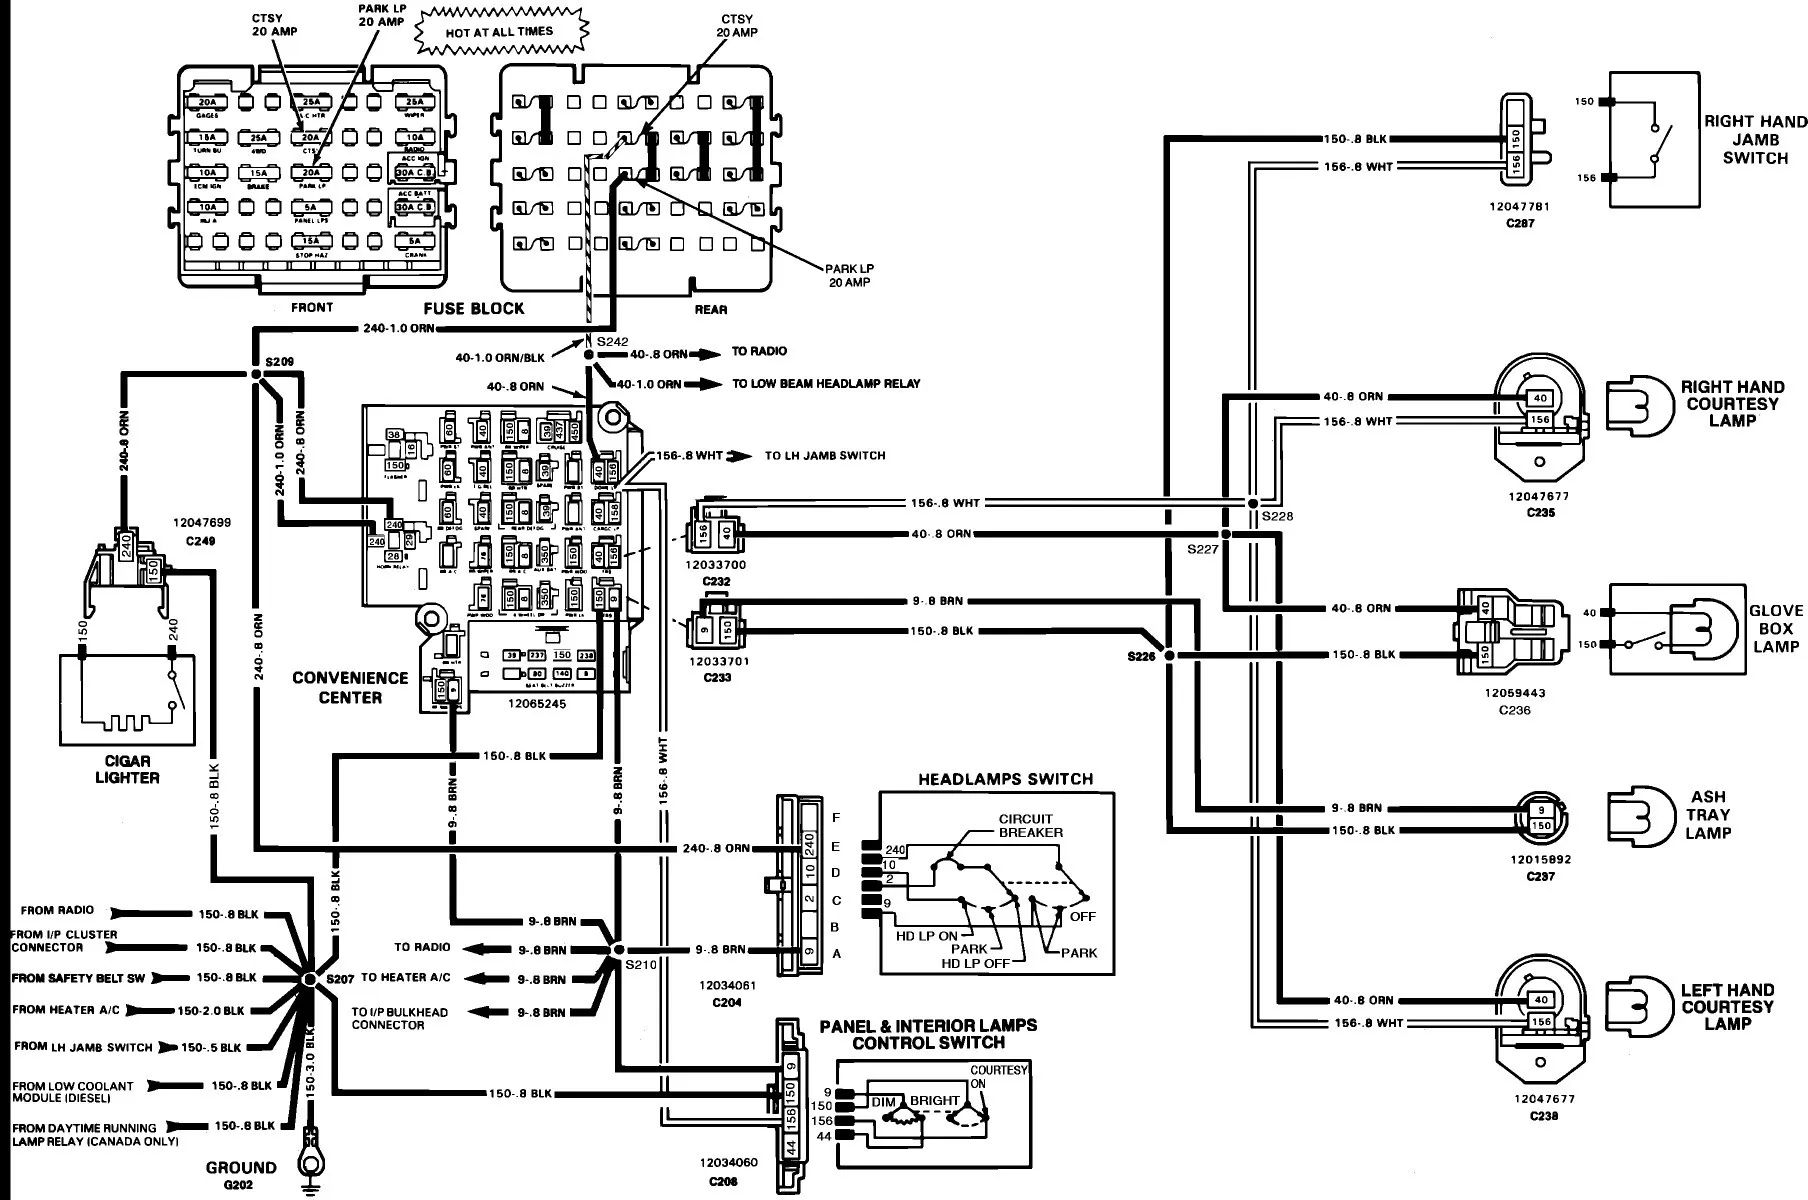 wiring diagram fiat stilo 2005